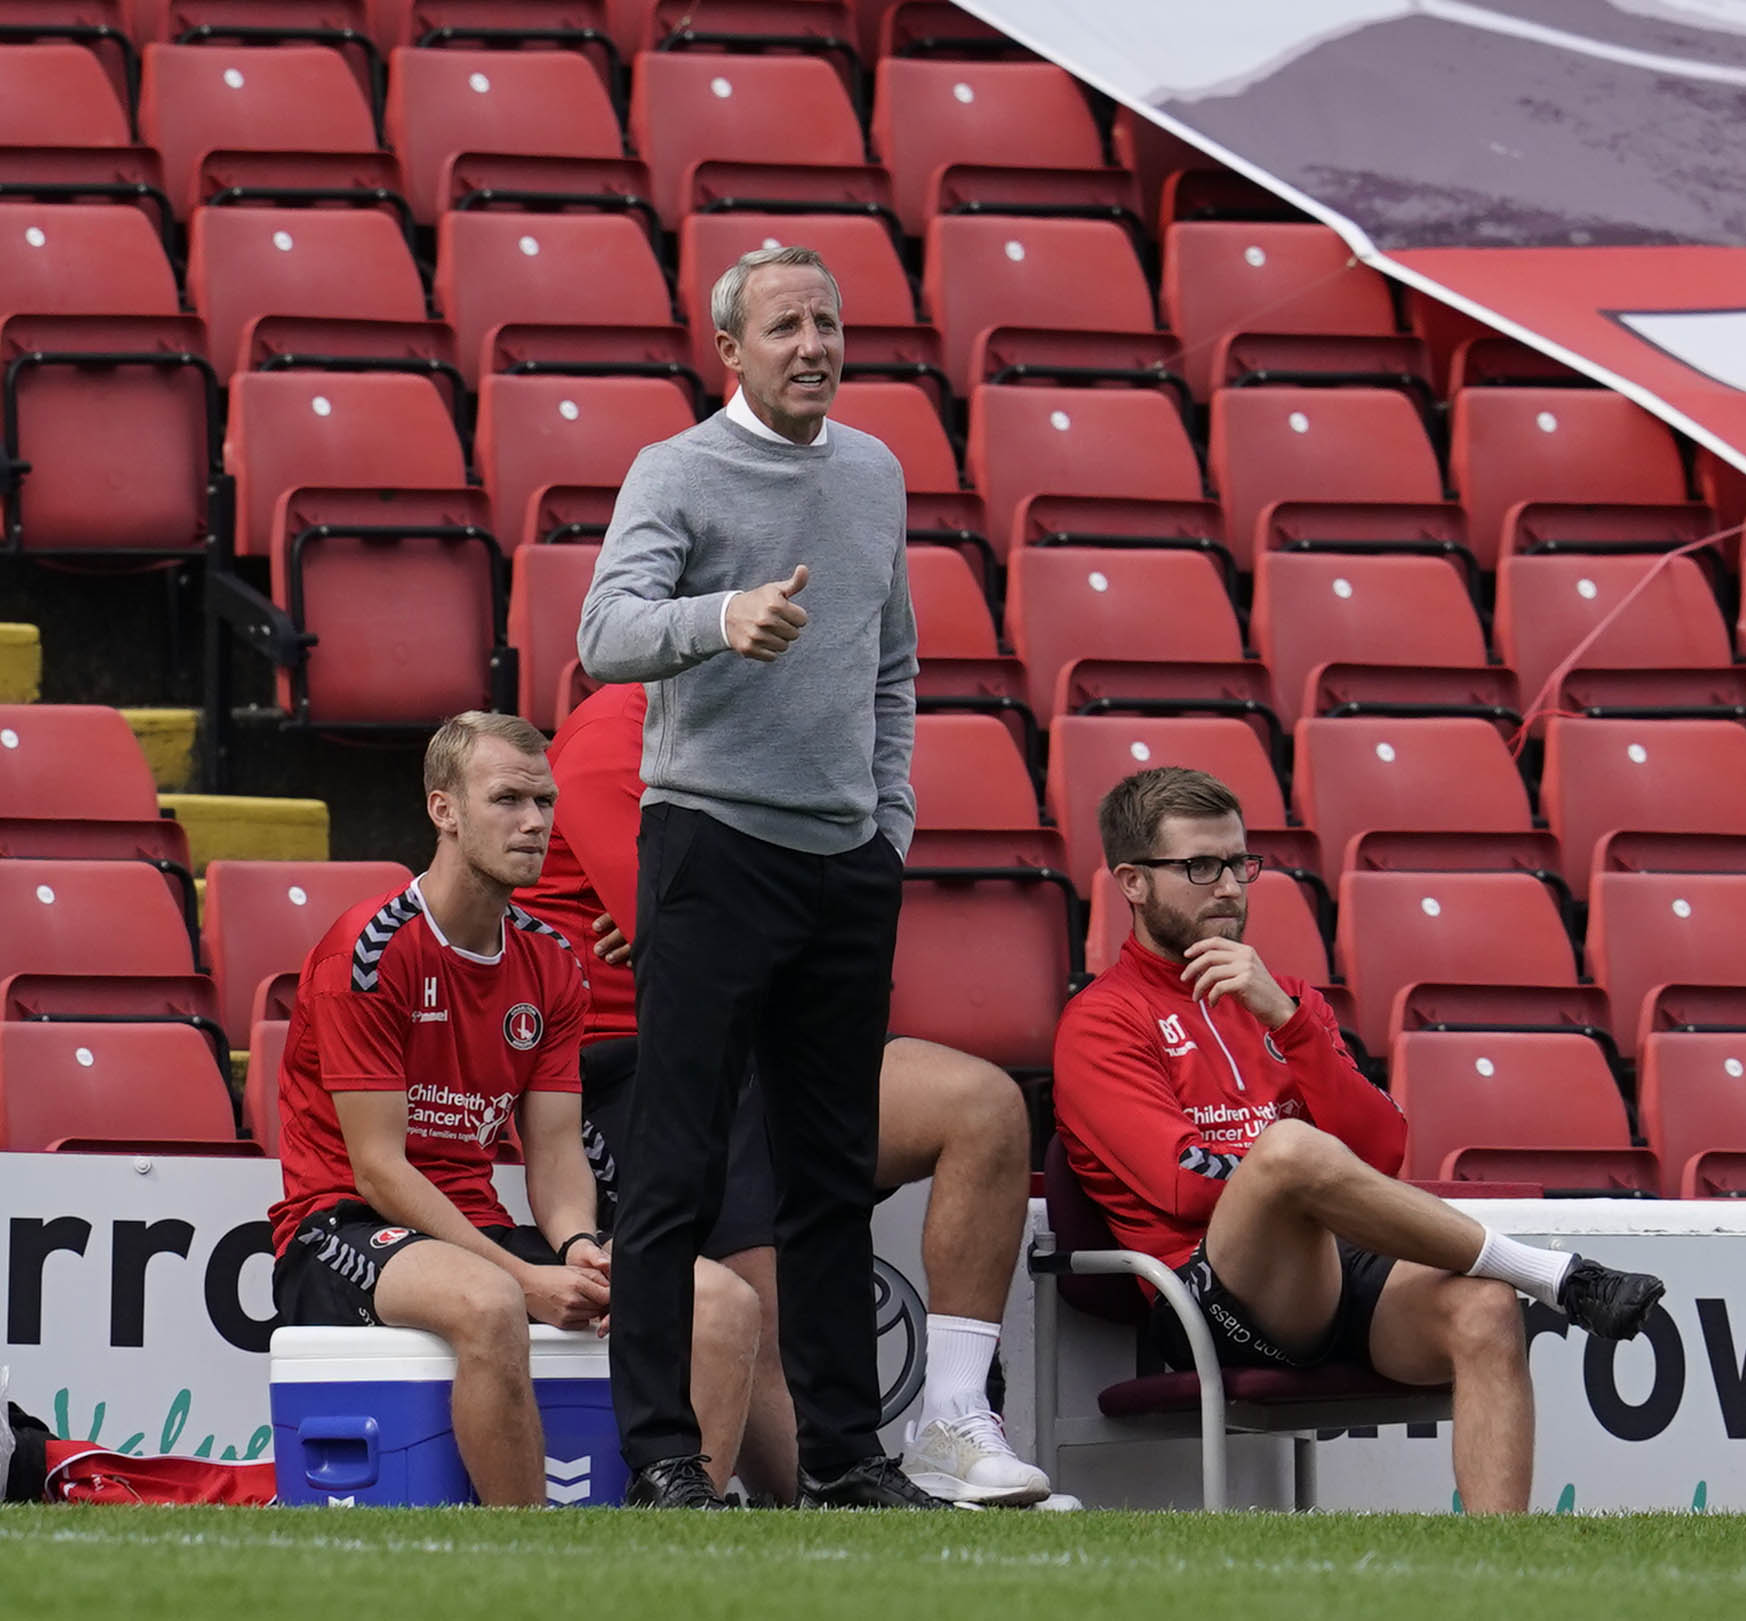 """Chelsea loanee Conor Gallagher - """"I'm off to a great start at Charlton - I have to keep it going"""""""